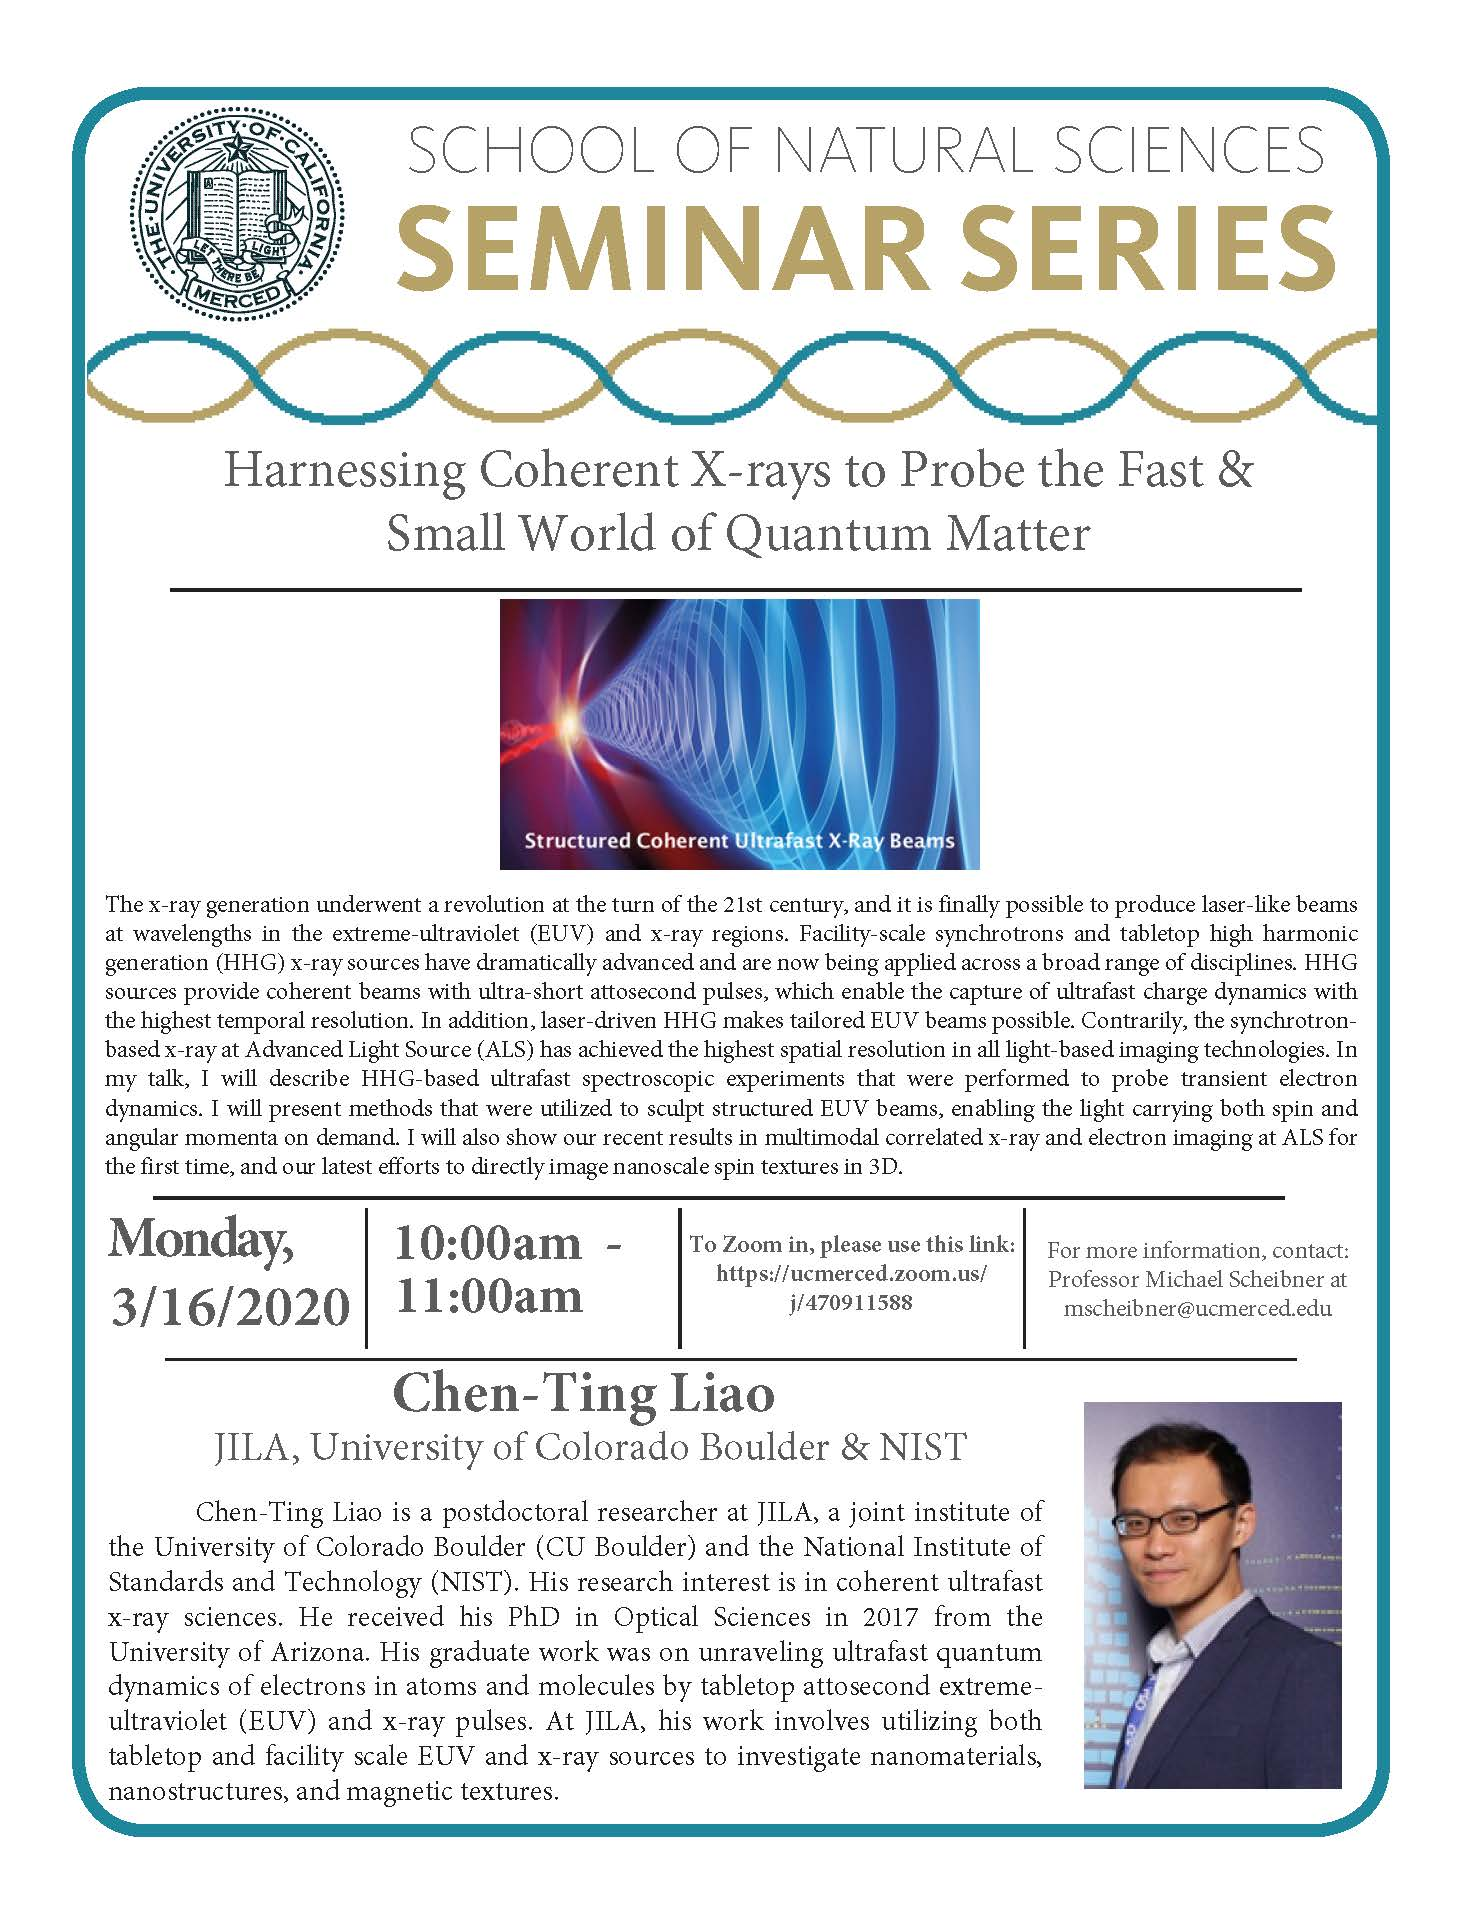 Physics Seminar for Dr. Chen-Ting Liao